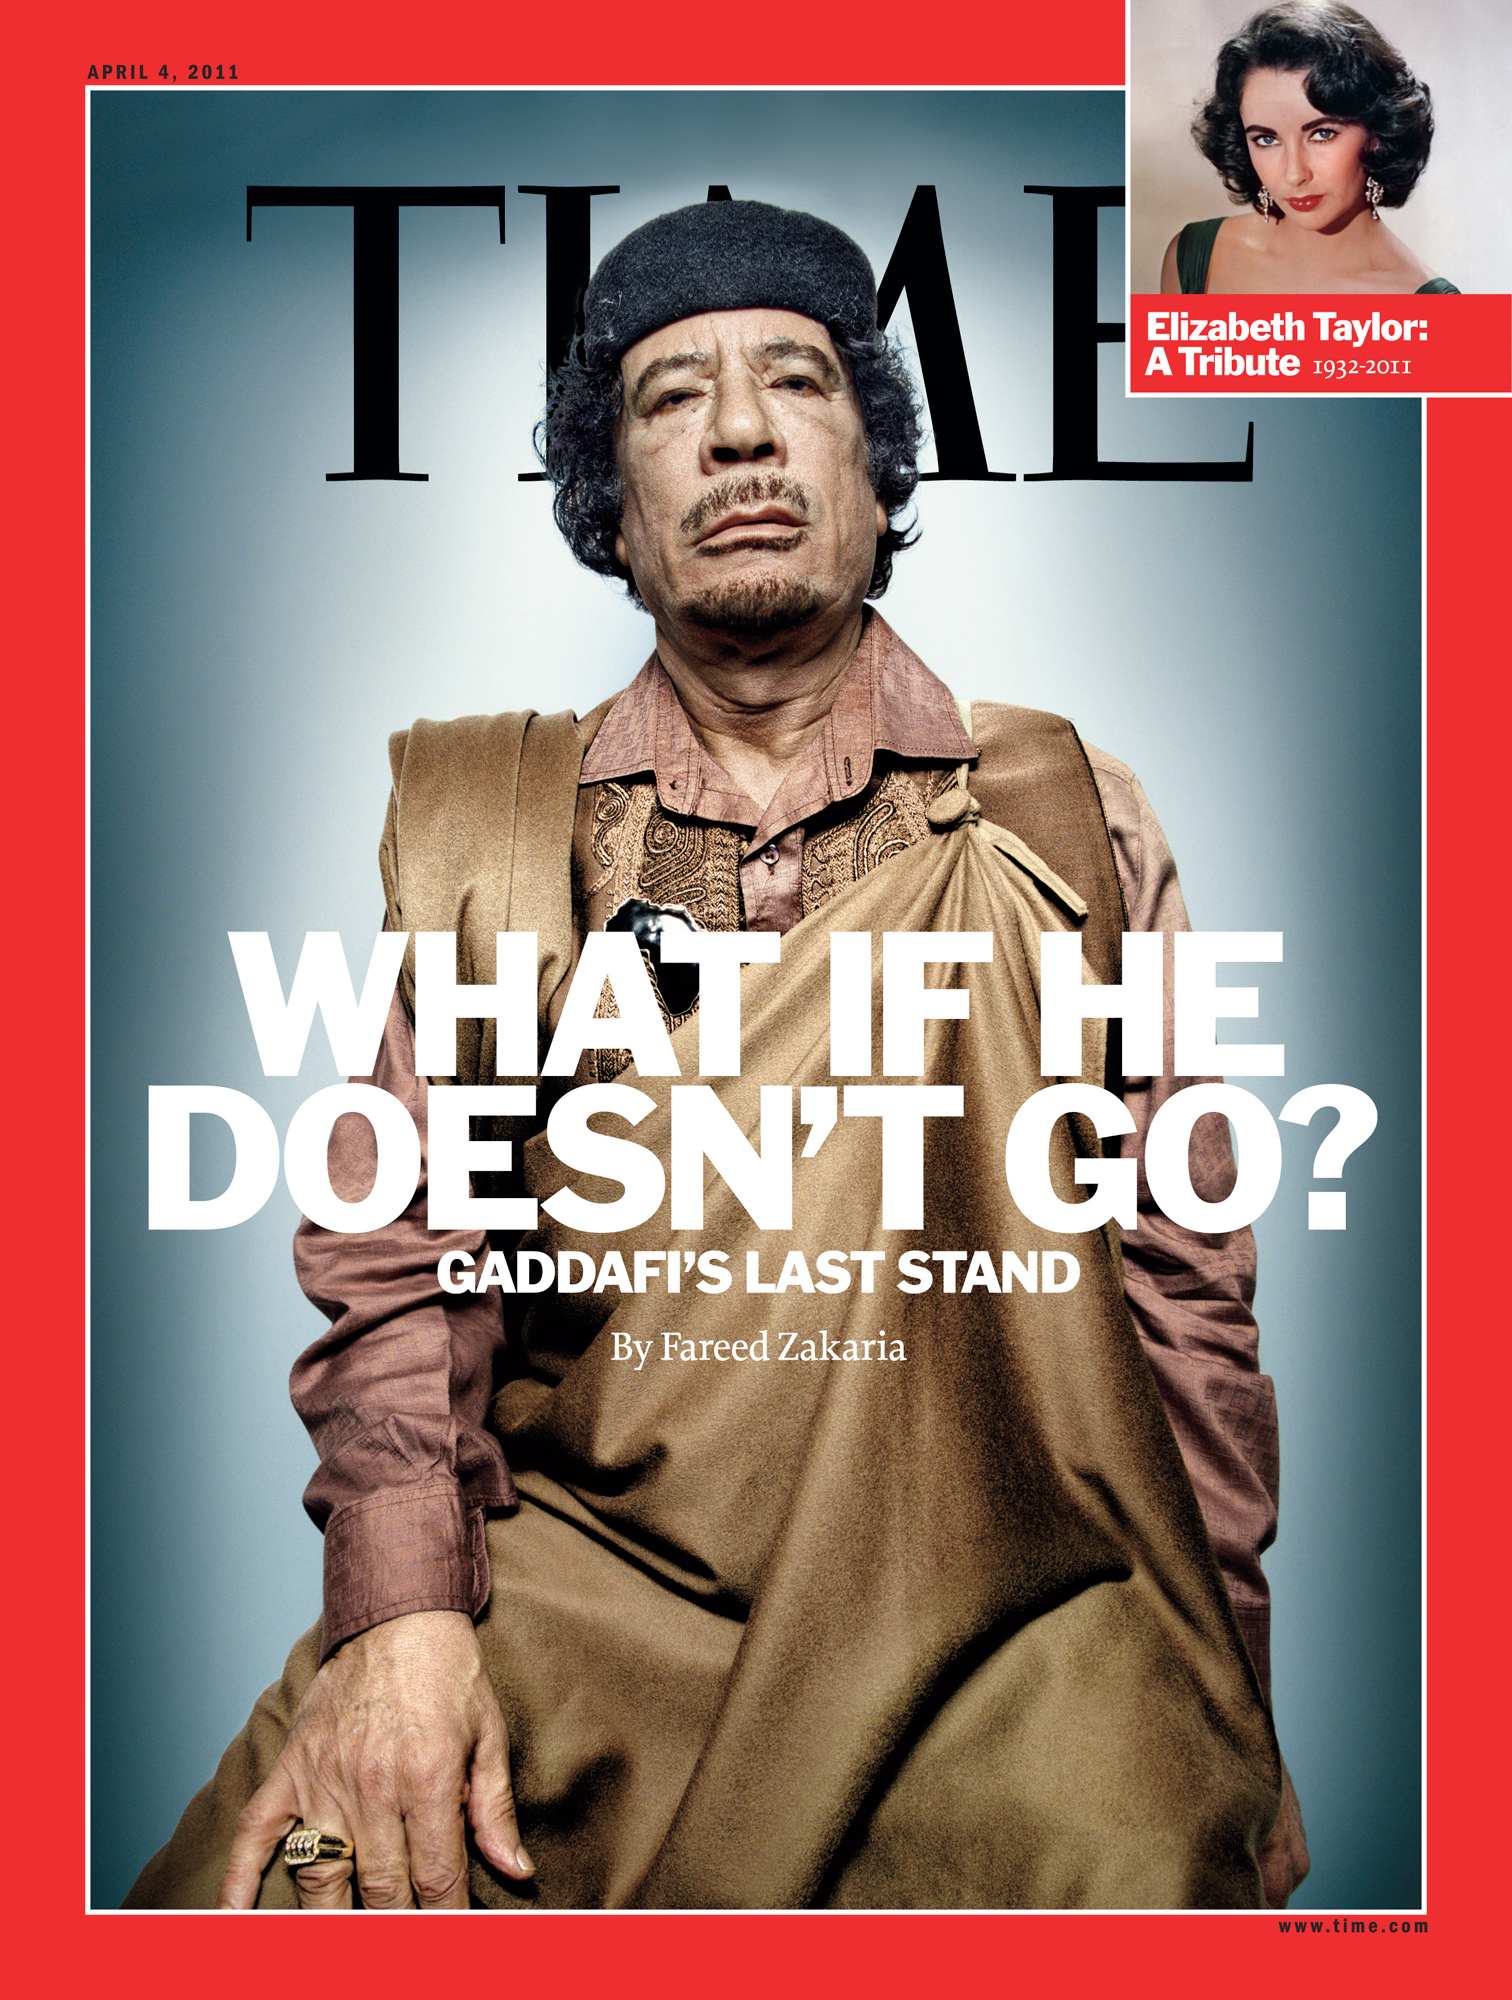 The cover of TIME, April 4, 2011.